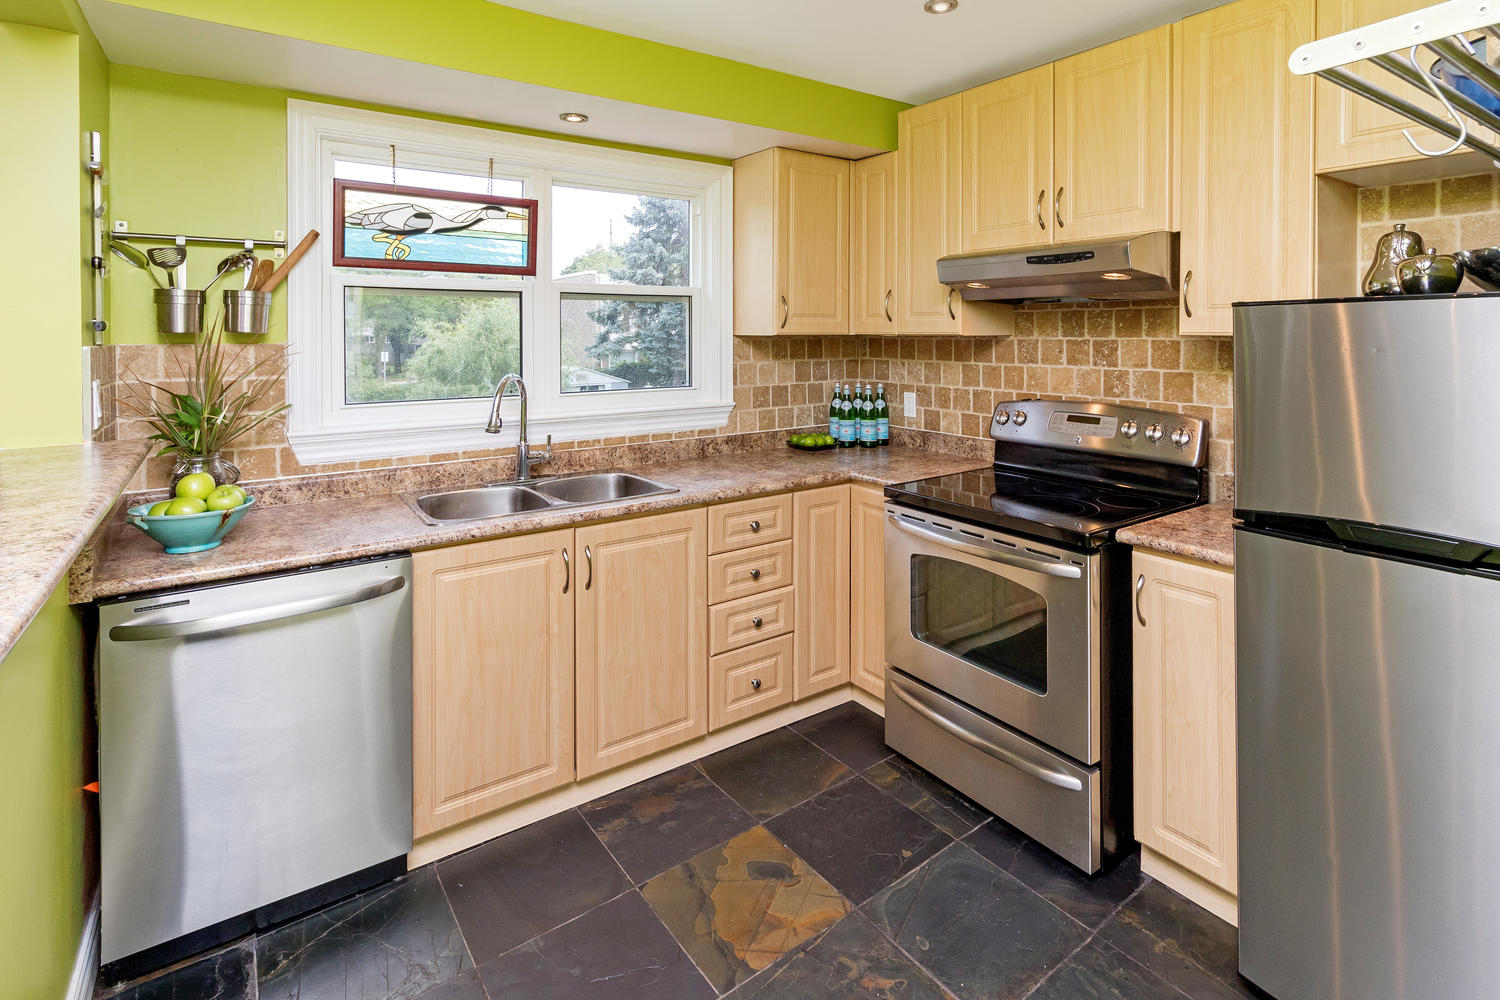 Sold 2356 brookhurst rd the village guru for The perfect kitchen mississauga